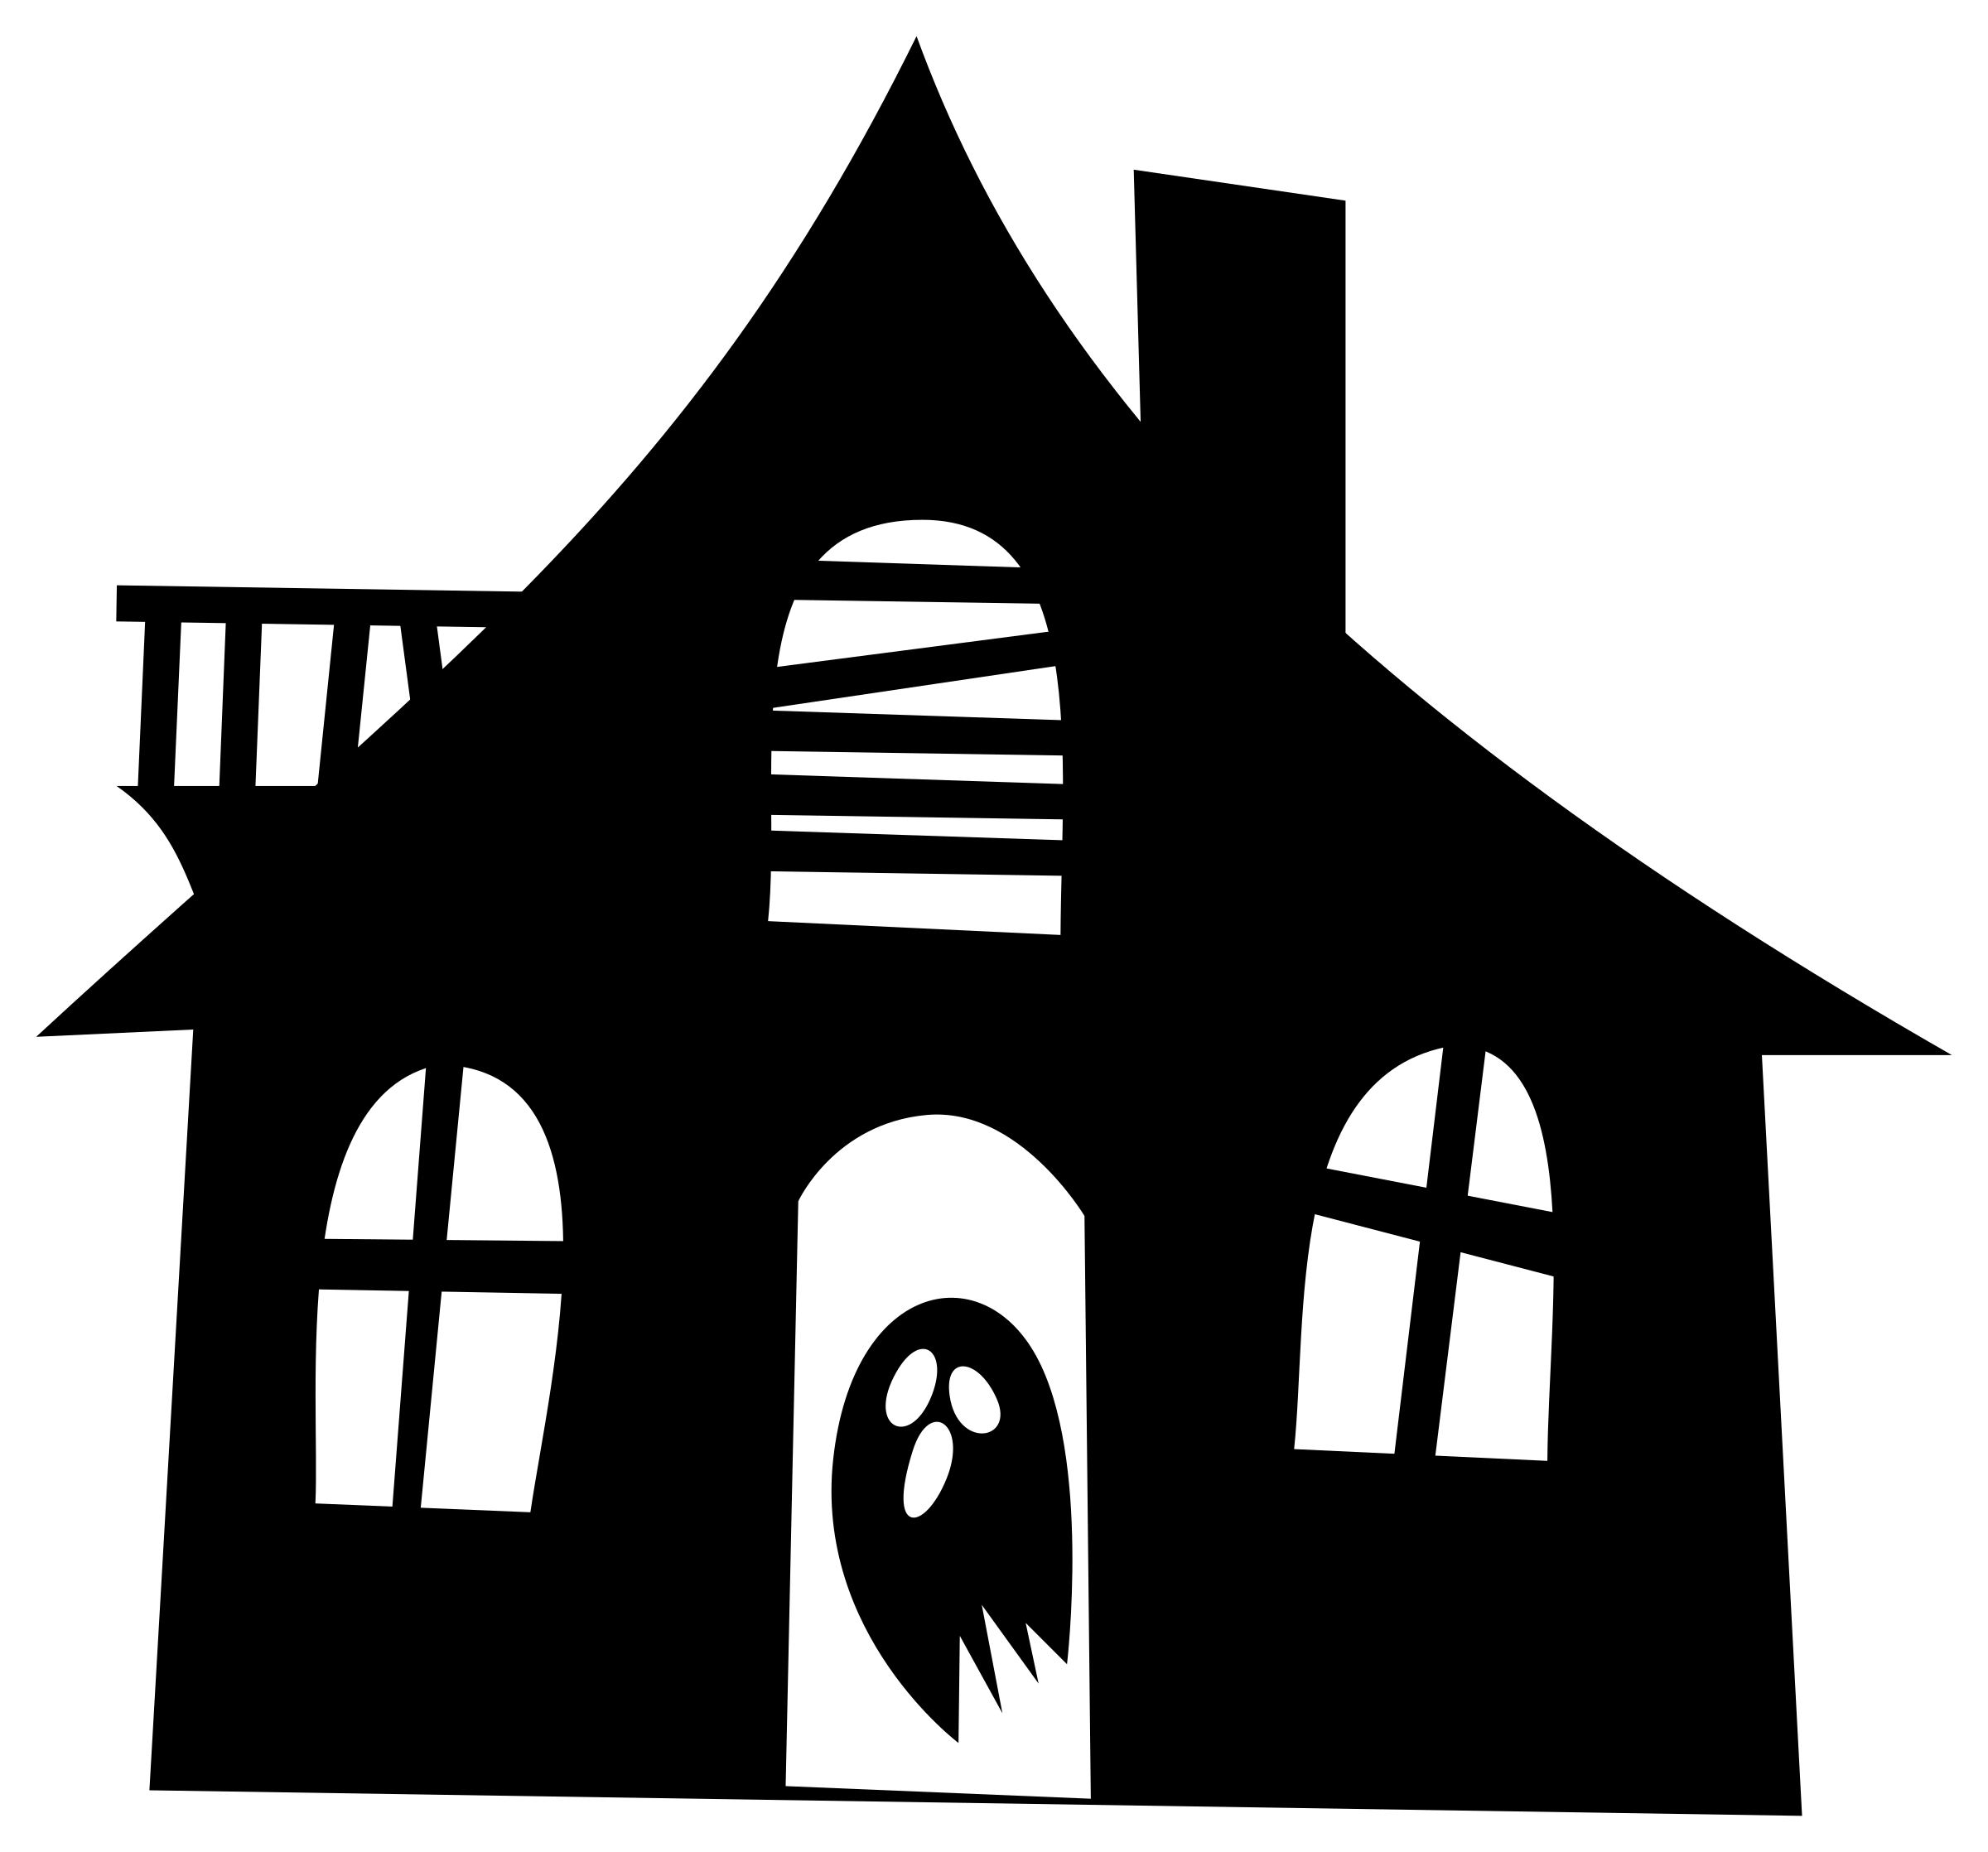 Free clipart house silhouette graphic library download Clipart - Haunted house silhouette graphic library download